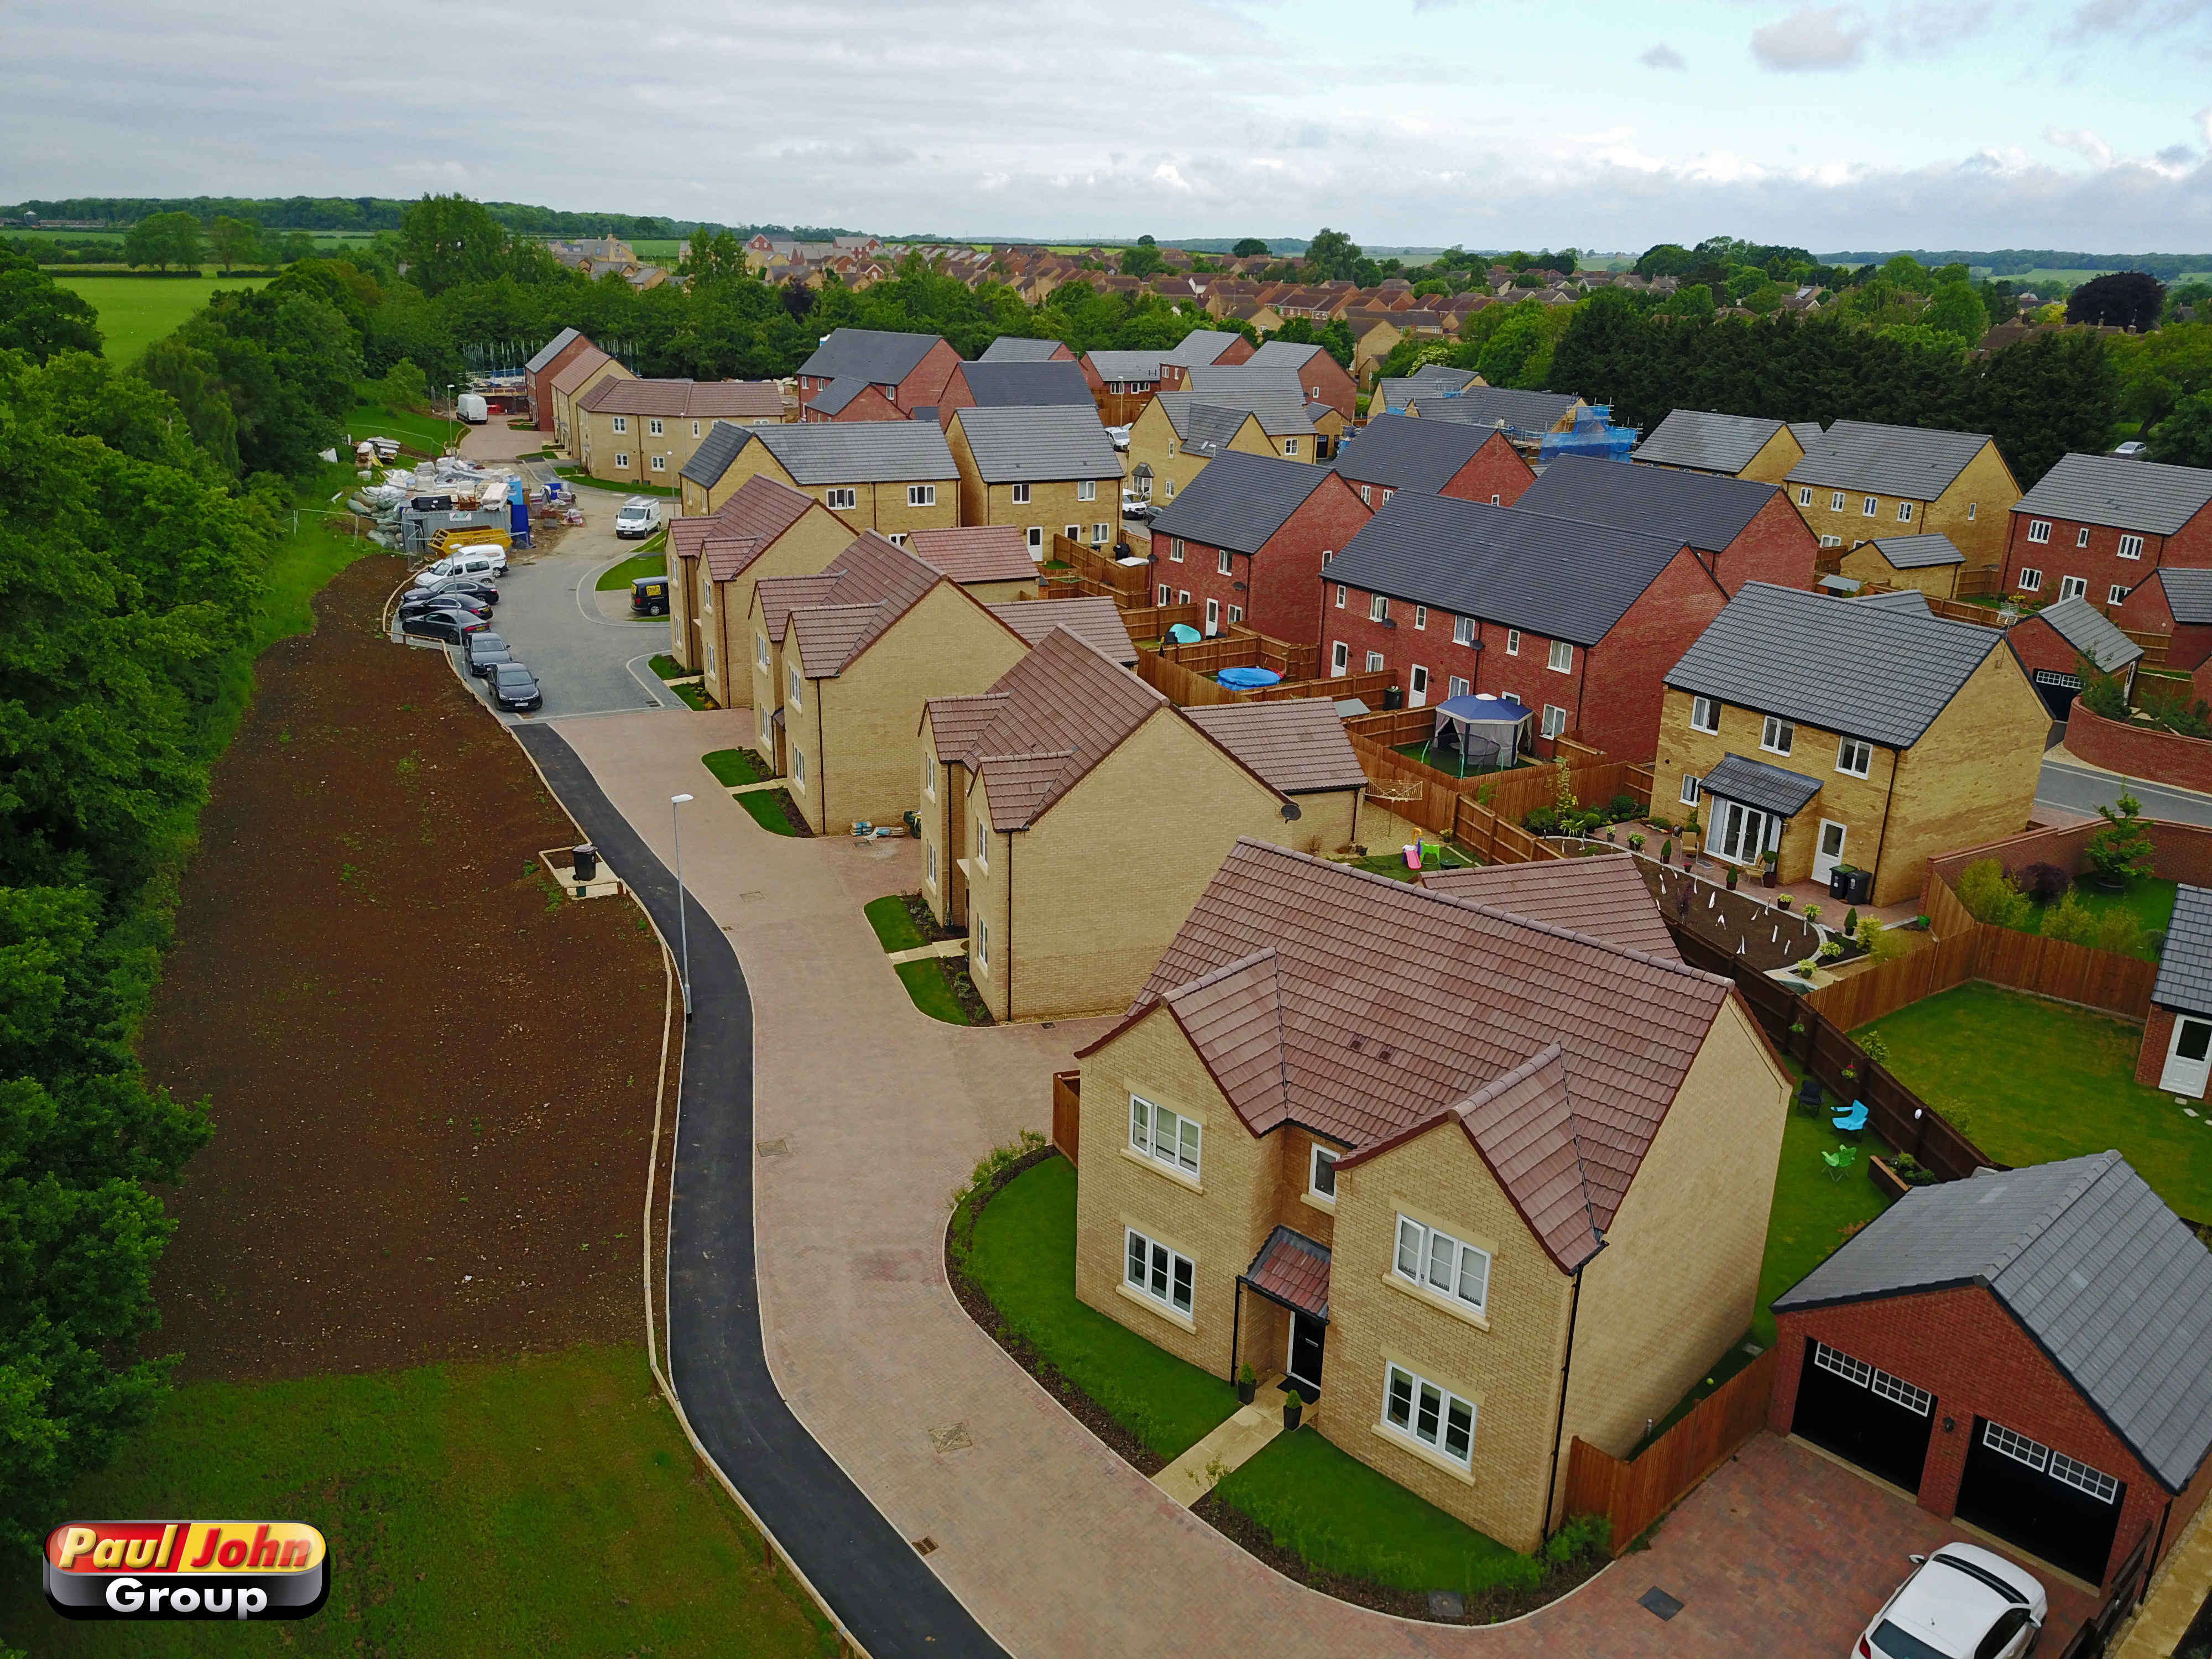 Persimmon Homes, Oundle